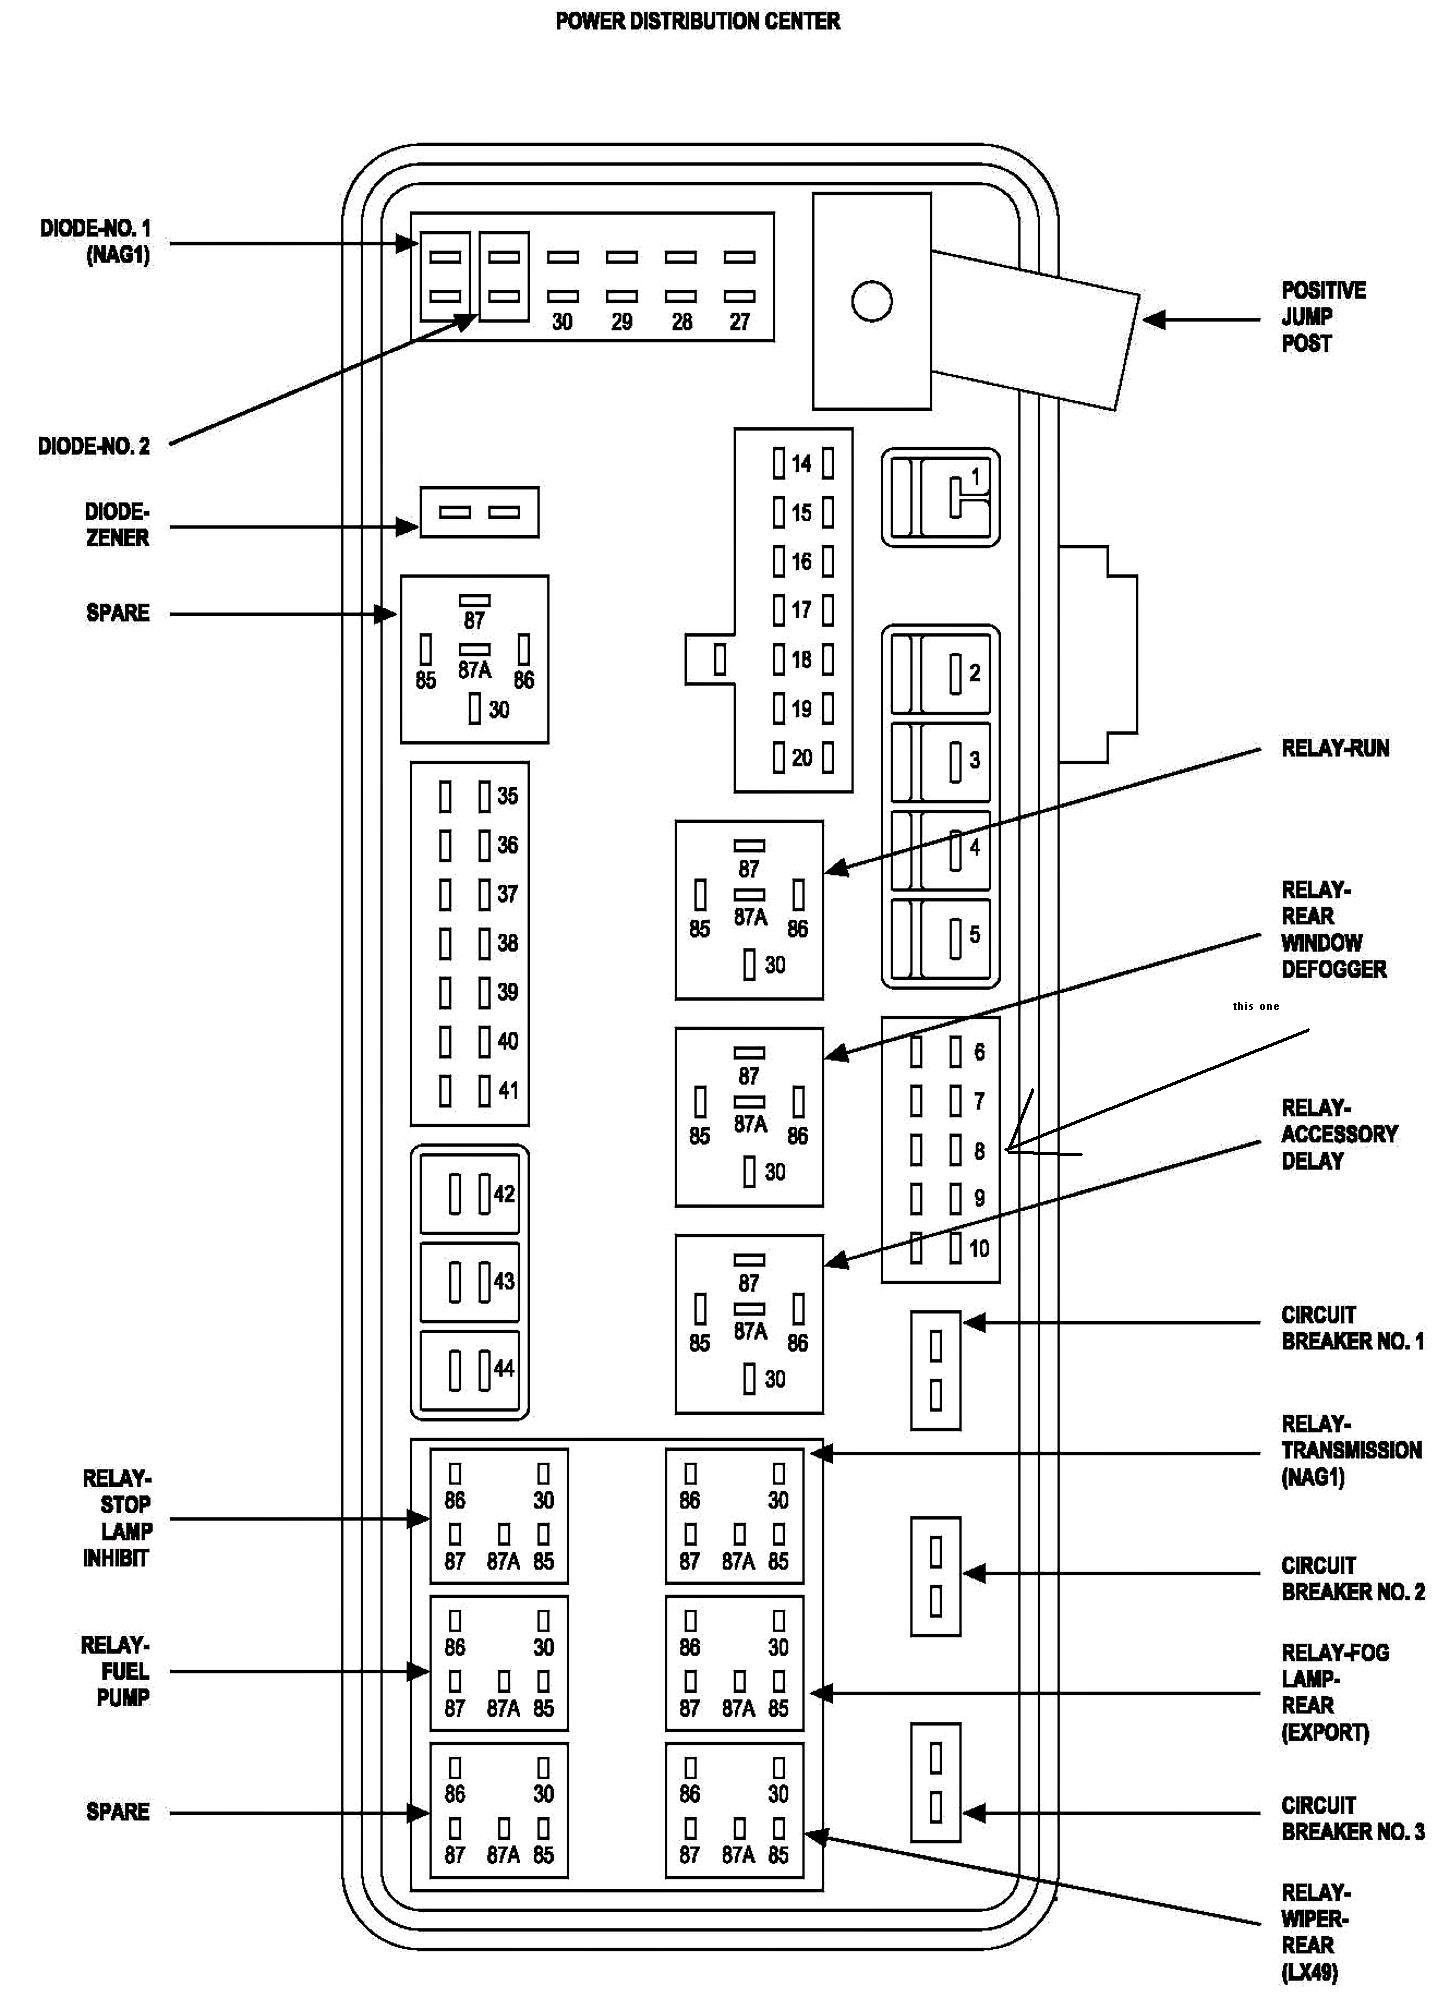 1991 dodge d150 wiring diagram trusted wiring diagrams u2022 rh sivamuni com  1991 dodge ram 150 wiring diagram